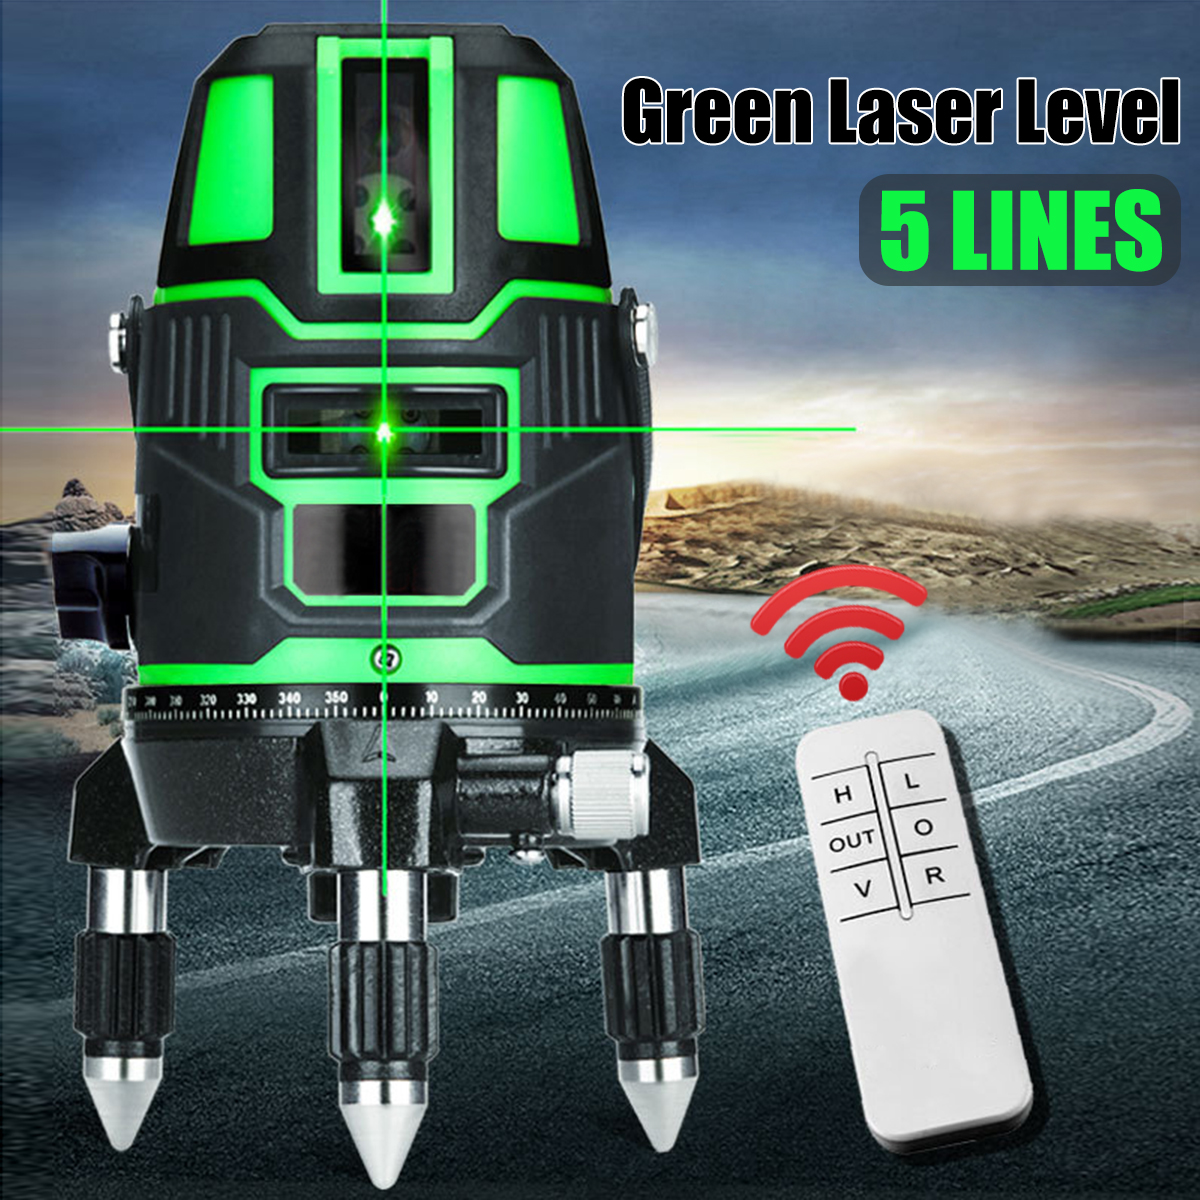 Green Laser Level 5 Lines 6 Points 360 Degrees Rotary Indoor Outdoor 635nm Corss Line Lazer Level Points Level Self Levelling firecore a8846 mini 4 lines 360 degrees red laser level auto self levelling in the range of 3 degrees